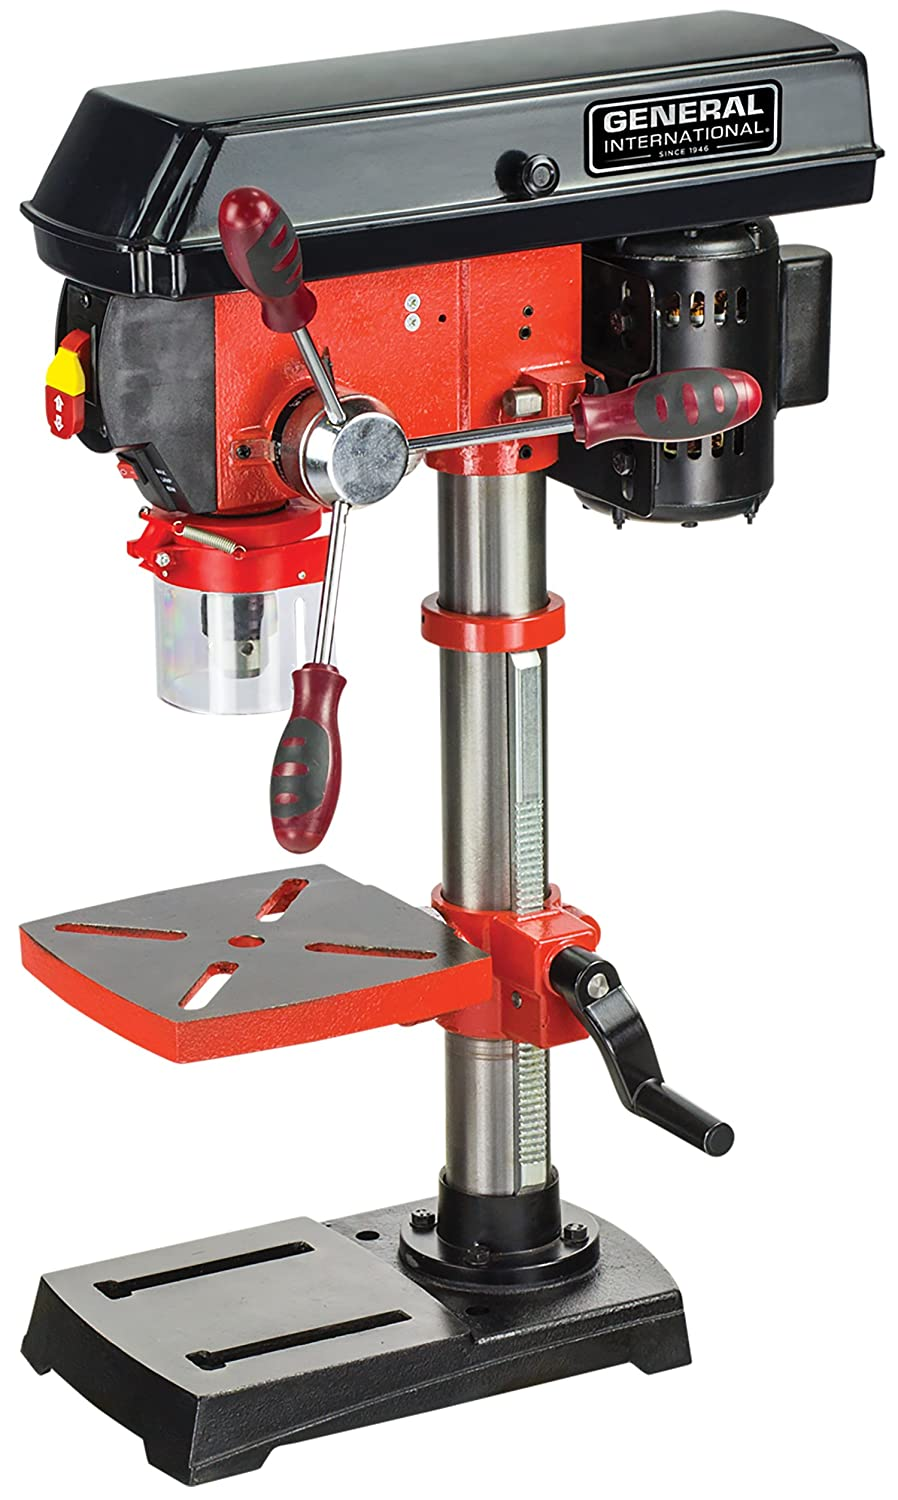 General Intl. Power Products DP2002 10' 5 Speed Drill Press